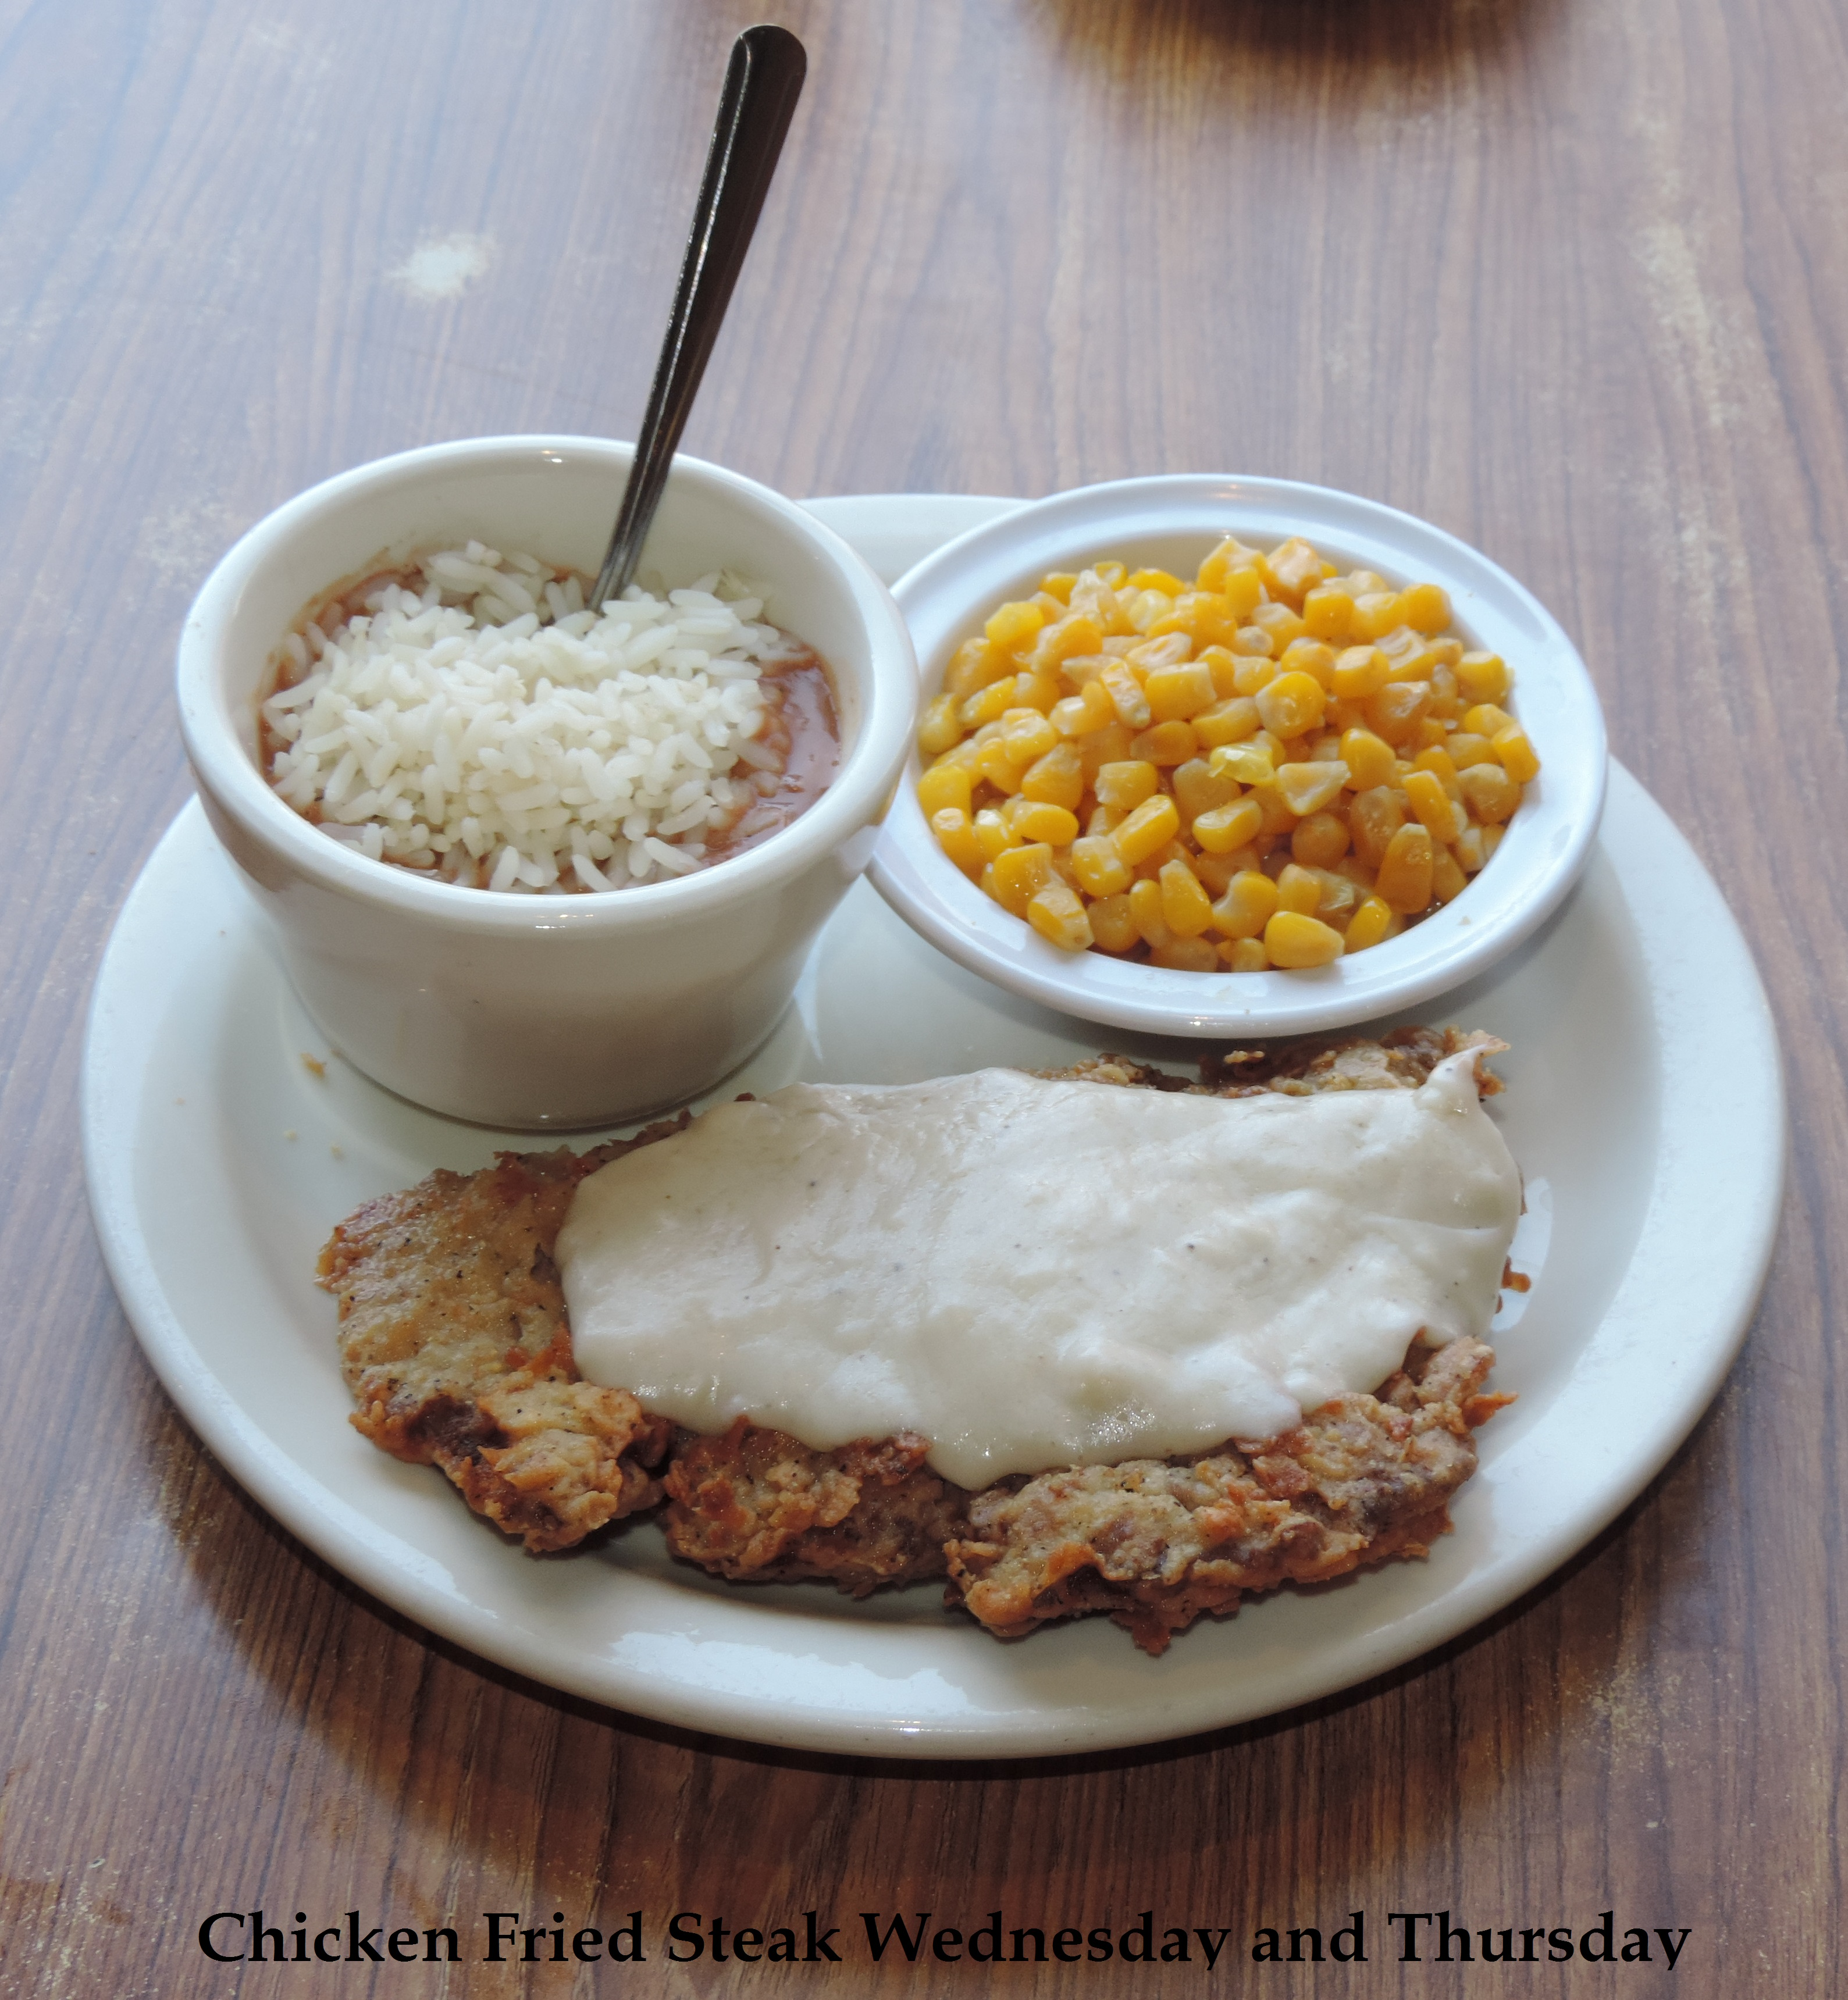 Chicken Fried Steak Lunch SpecialWednesday and Thursday